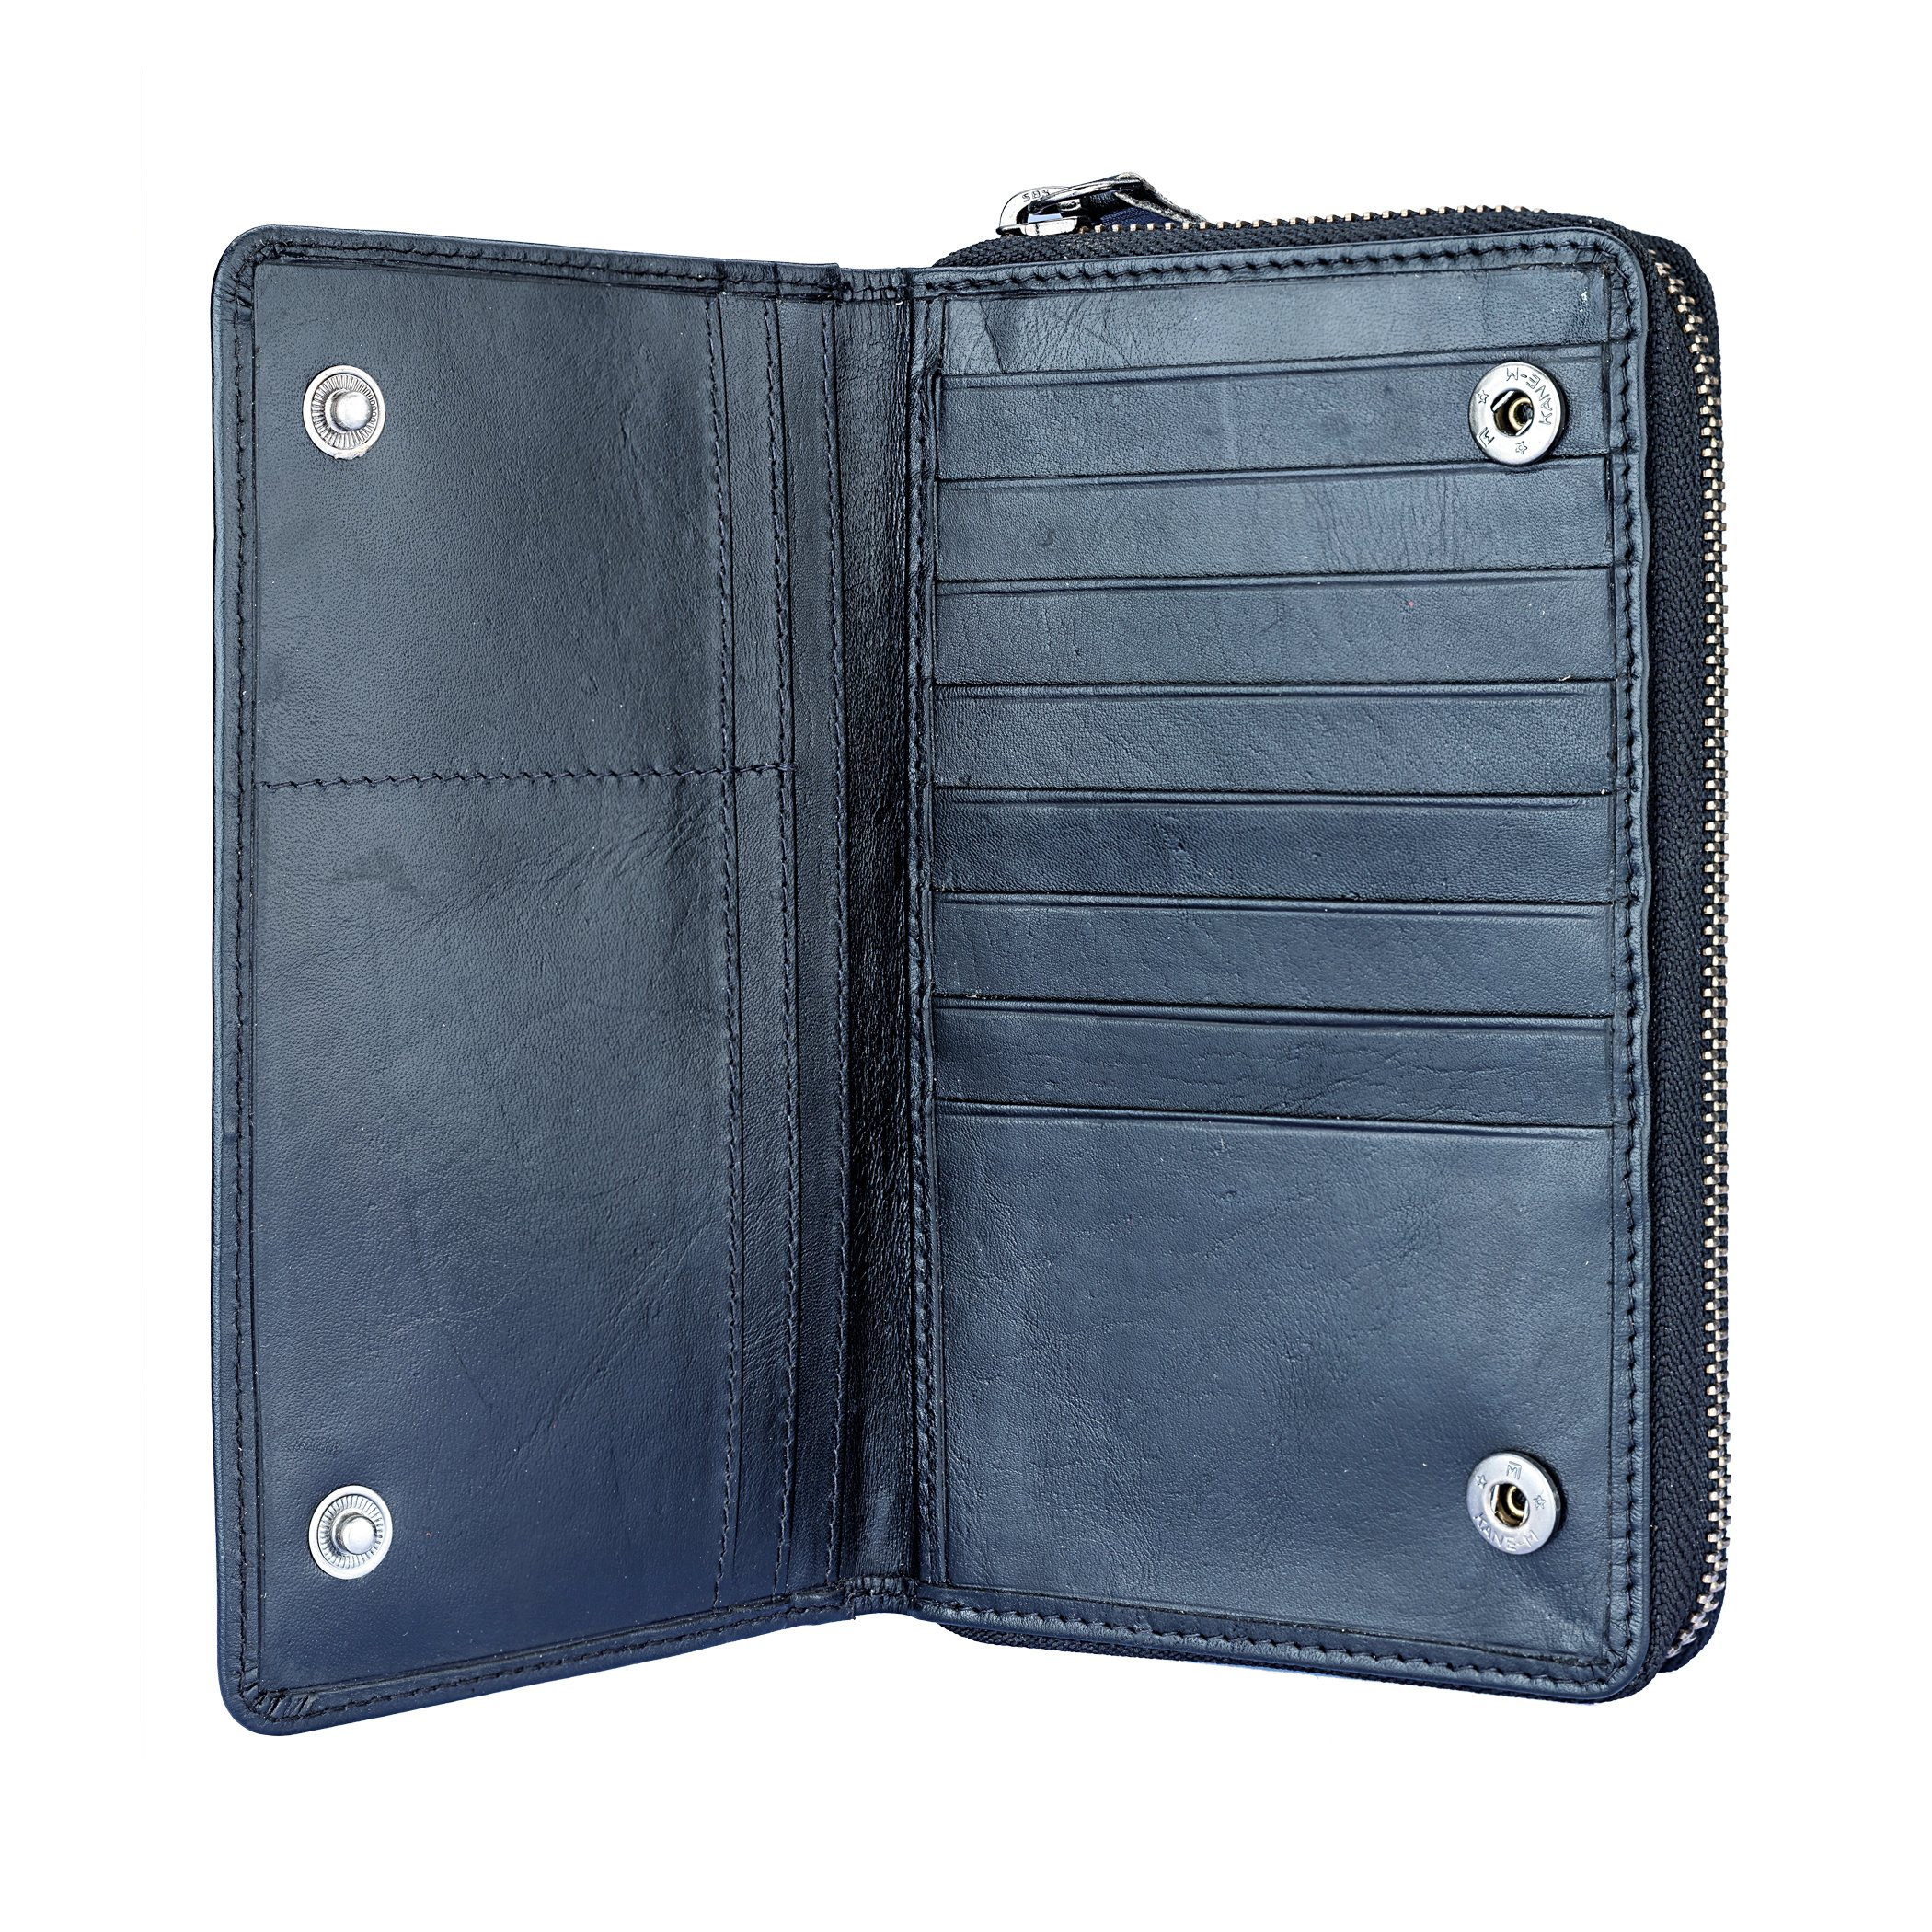 Leather Bifold Travel Wallet Passport Black|Finelaer by FINELAER (Image #2)